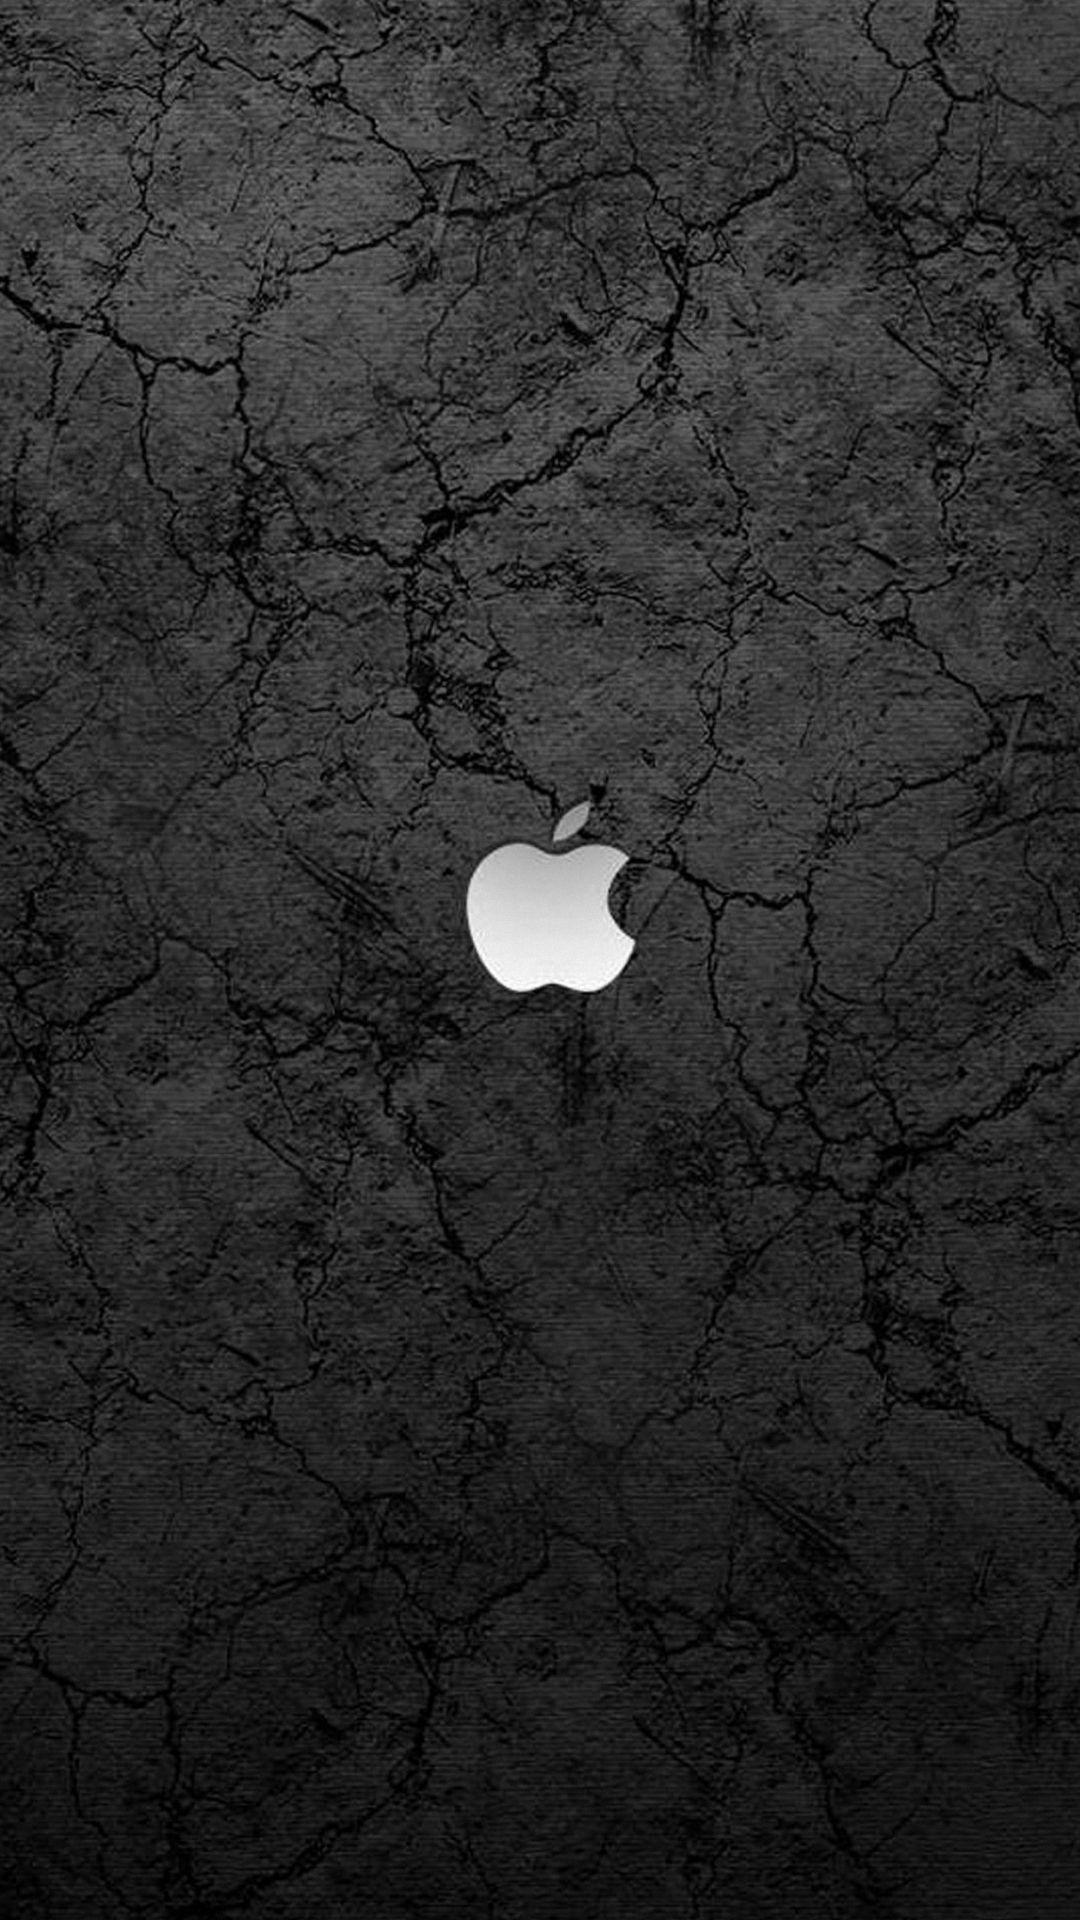 Hd Black White Apple Iphone 6 6s Plus Wallpapers Computer Mobile Backgrounds Dow Fond Ecran Iphone 5s Fond Ecran Gratuit Paysage Fond D Ecran Iphone Apple